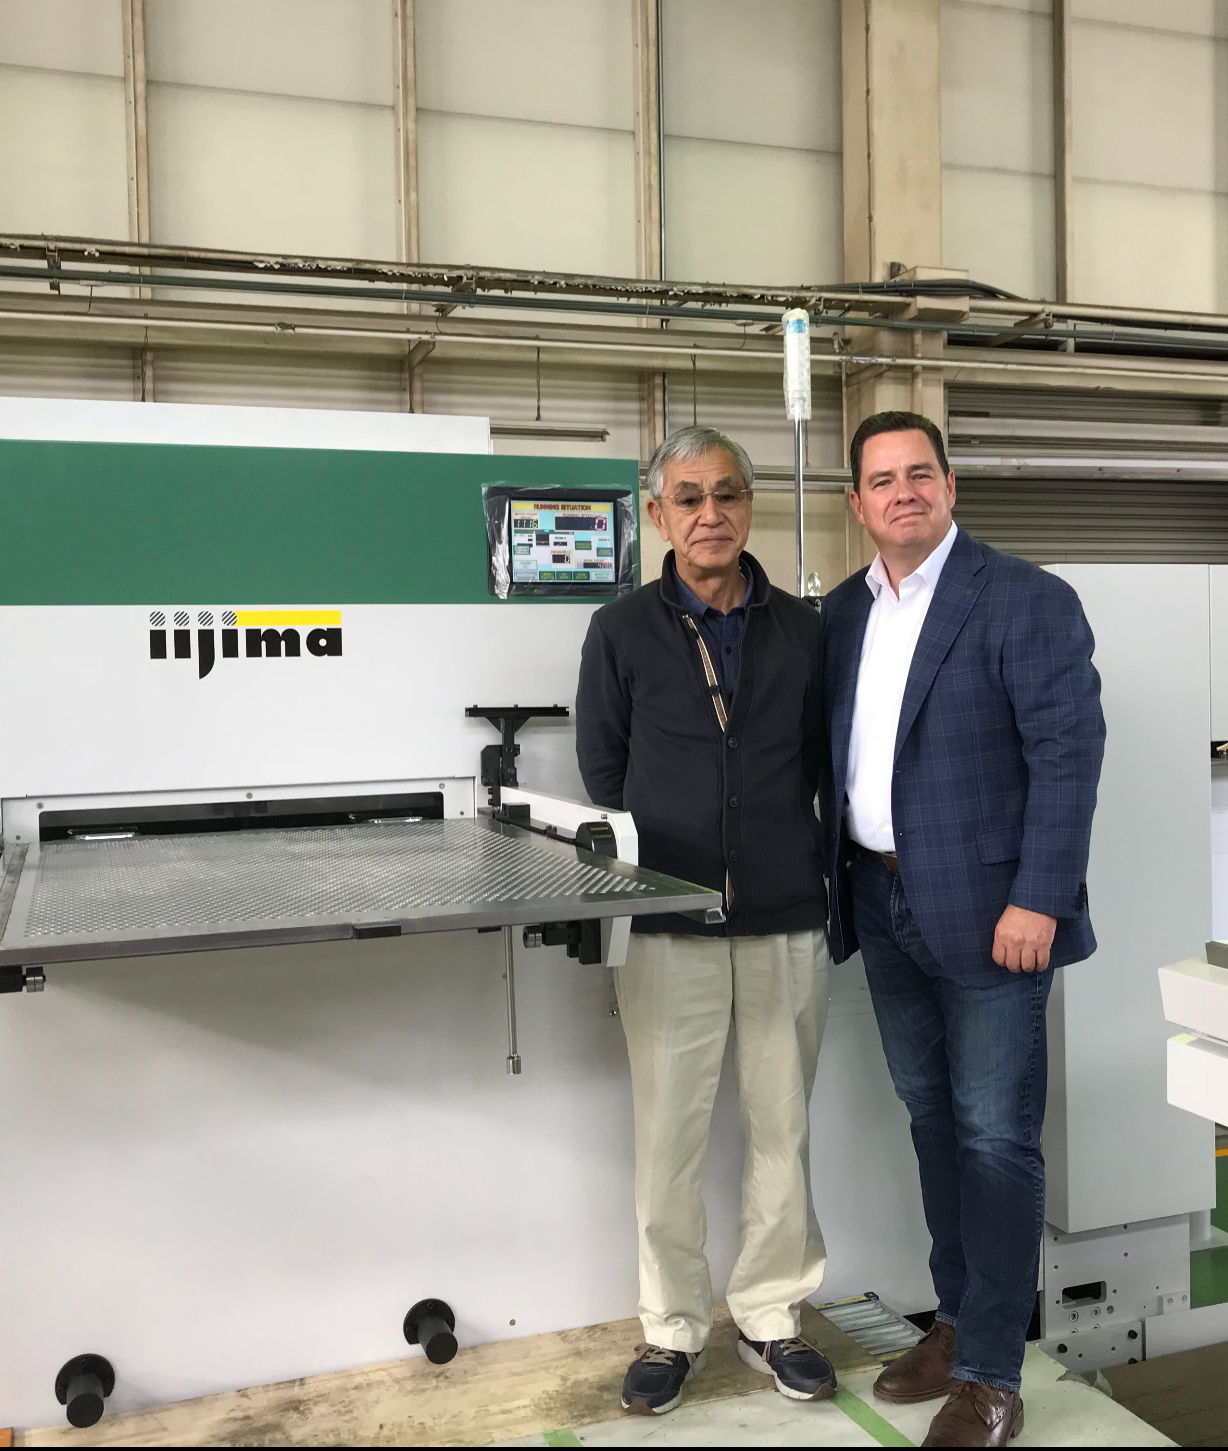 Mr.-Iijima-and-Michael-DeBard-at-the-Iijima-Factory-in-Japan